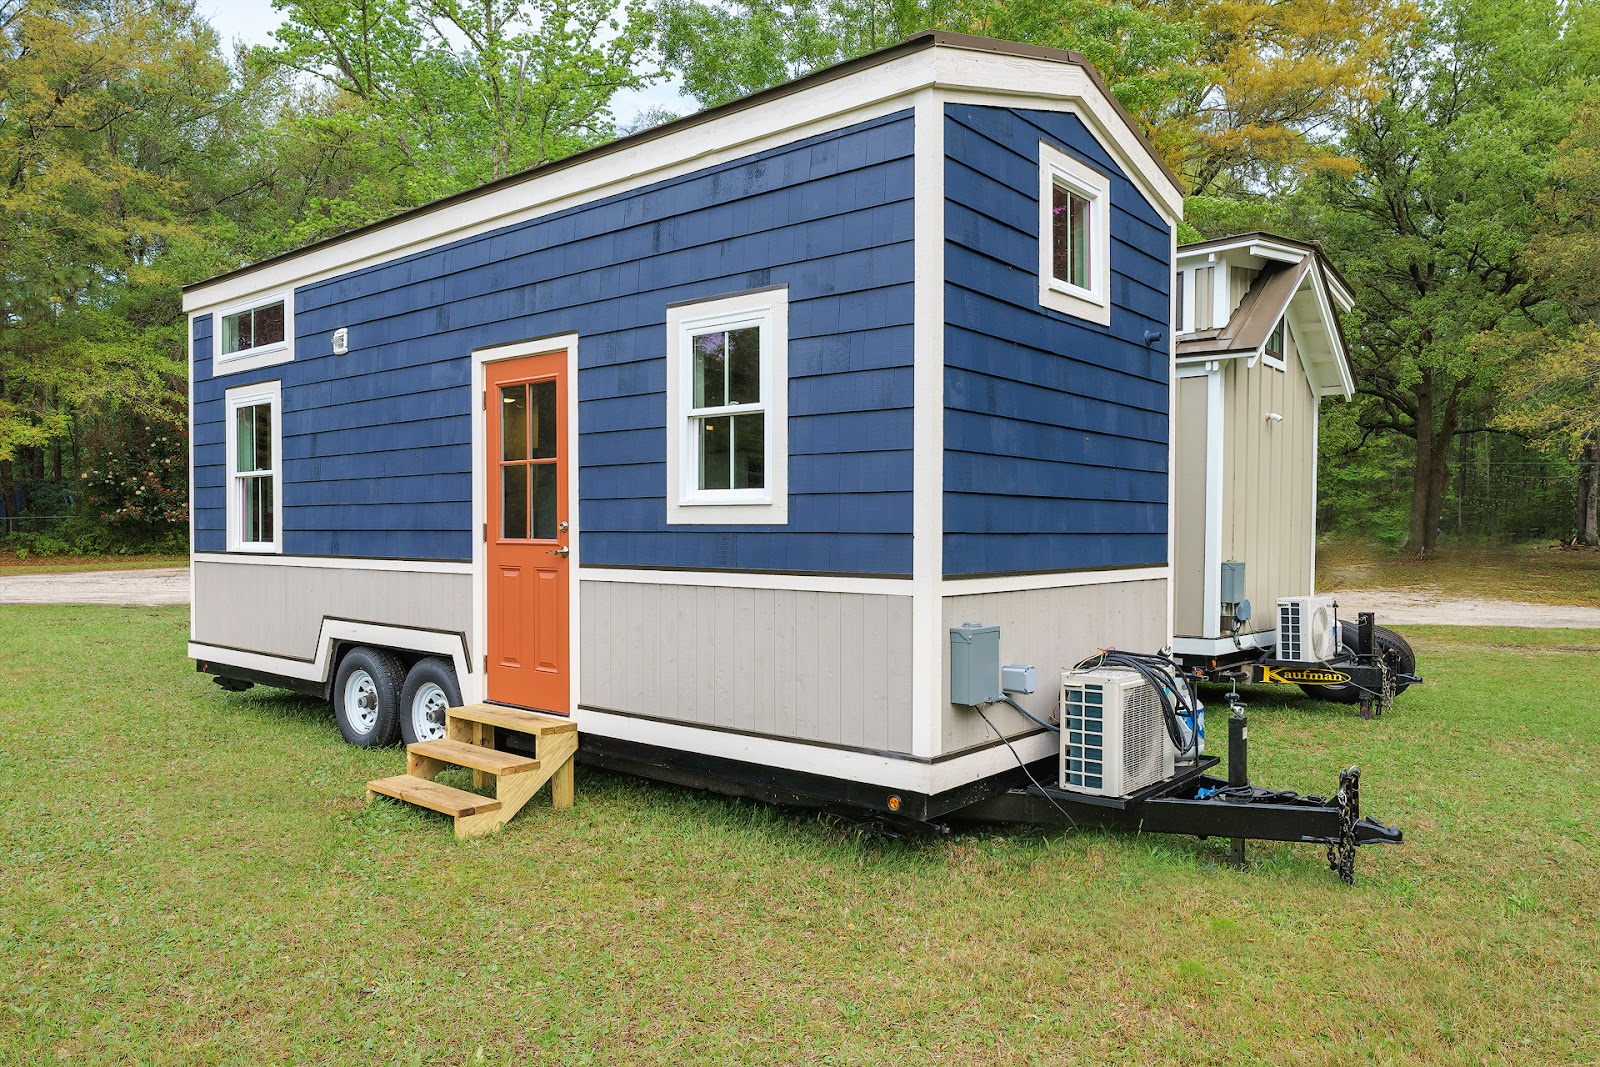 Tiny house town the indigo tiny house from driftwood homes usa - Around america in a tiny house ...